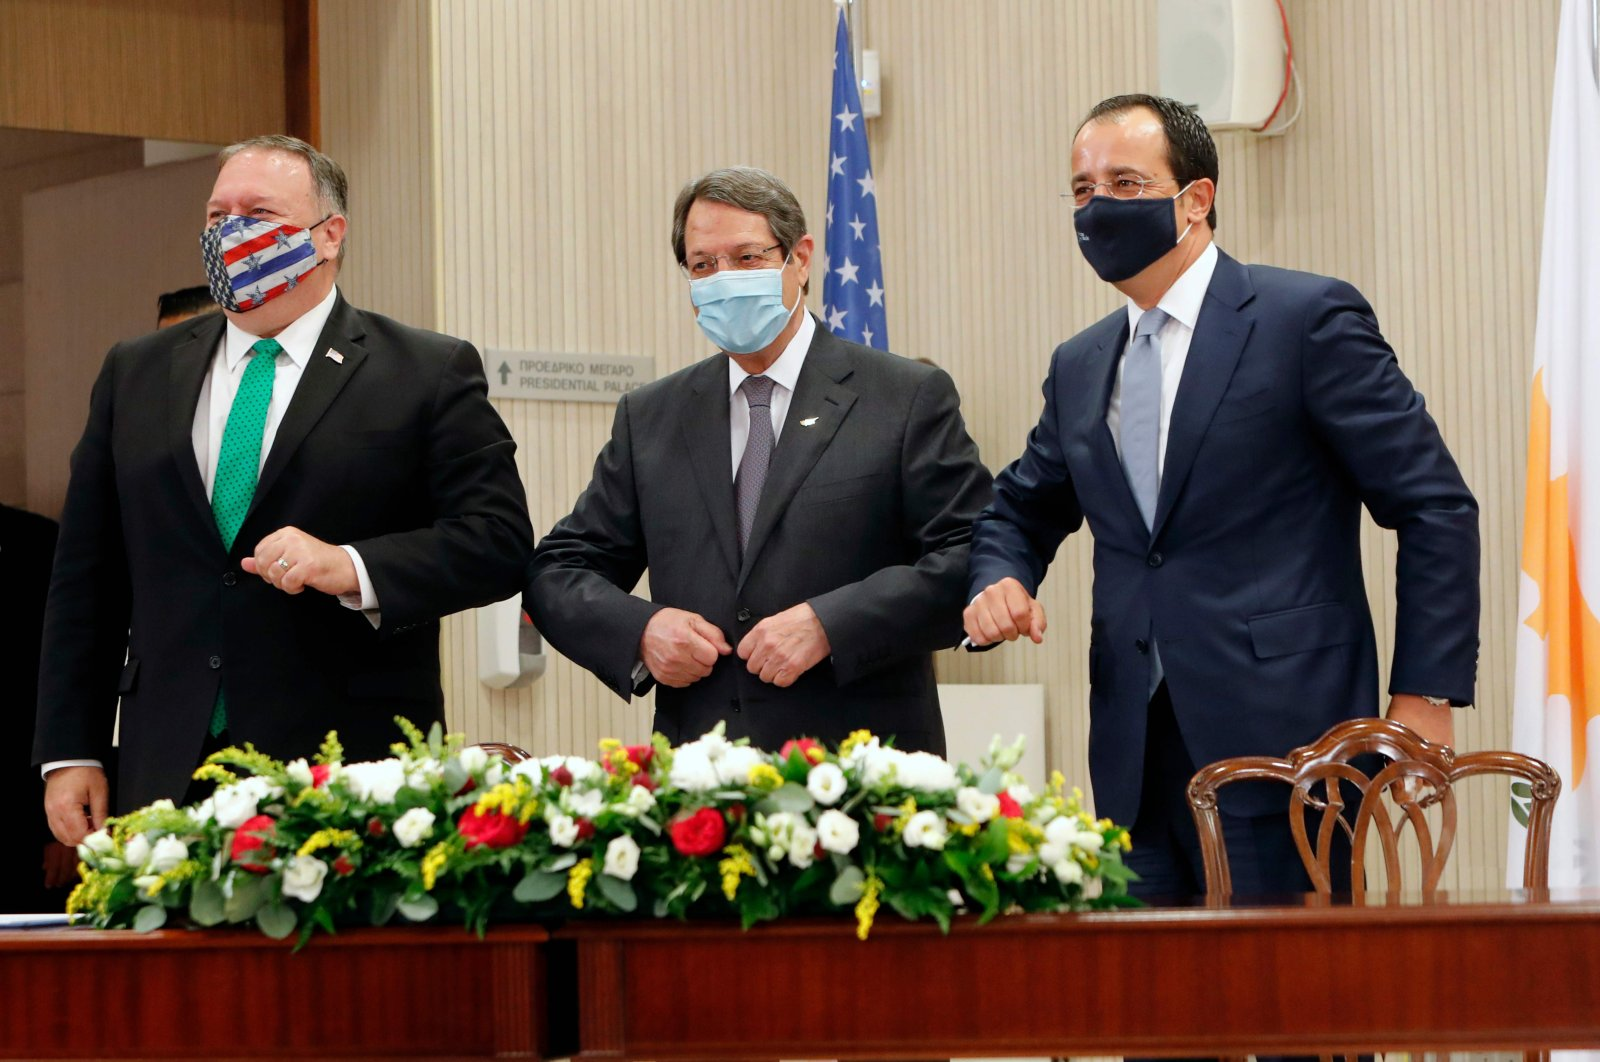 U.S. Secretary of State Mike Pompeo (L), Greek Cypriot leader Nicos Anastasiades (C), and Greek Cypriot foreign minister Nikos Christodoulides (R) touch elbows as they meet at the presidential palace in the capital Nicosia, Greek Cyprus, Sept. 12, 2020. (AFP Photo)